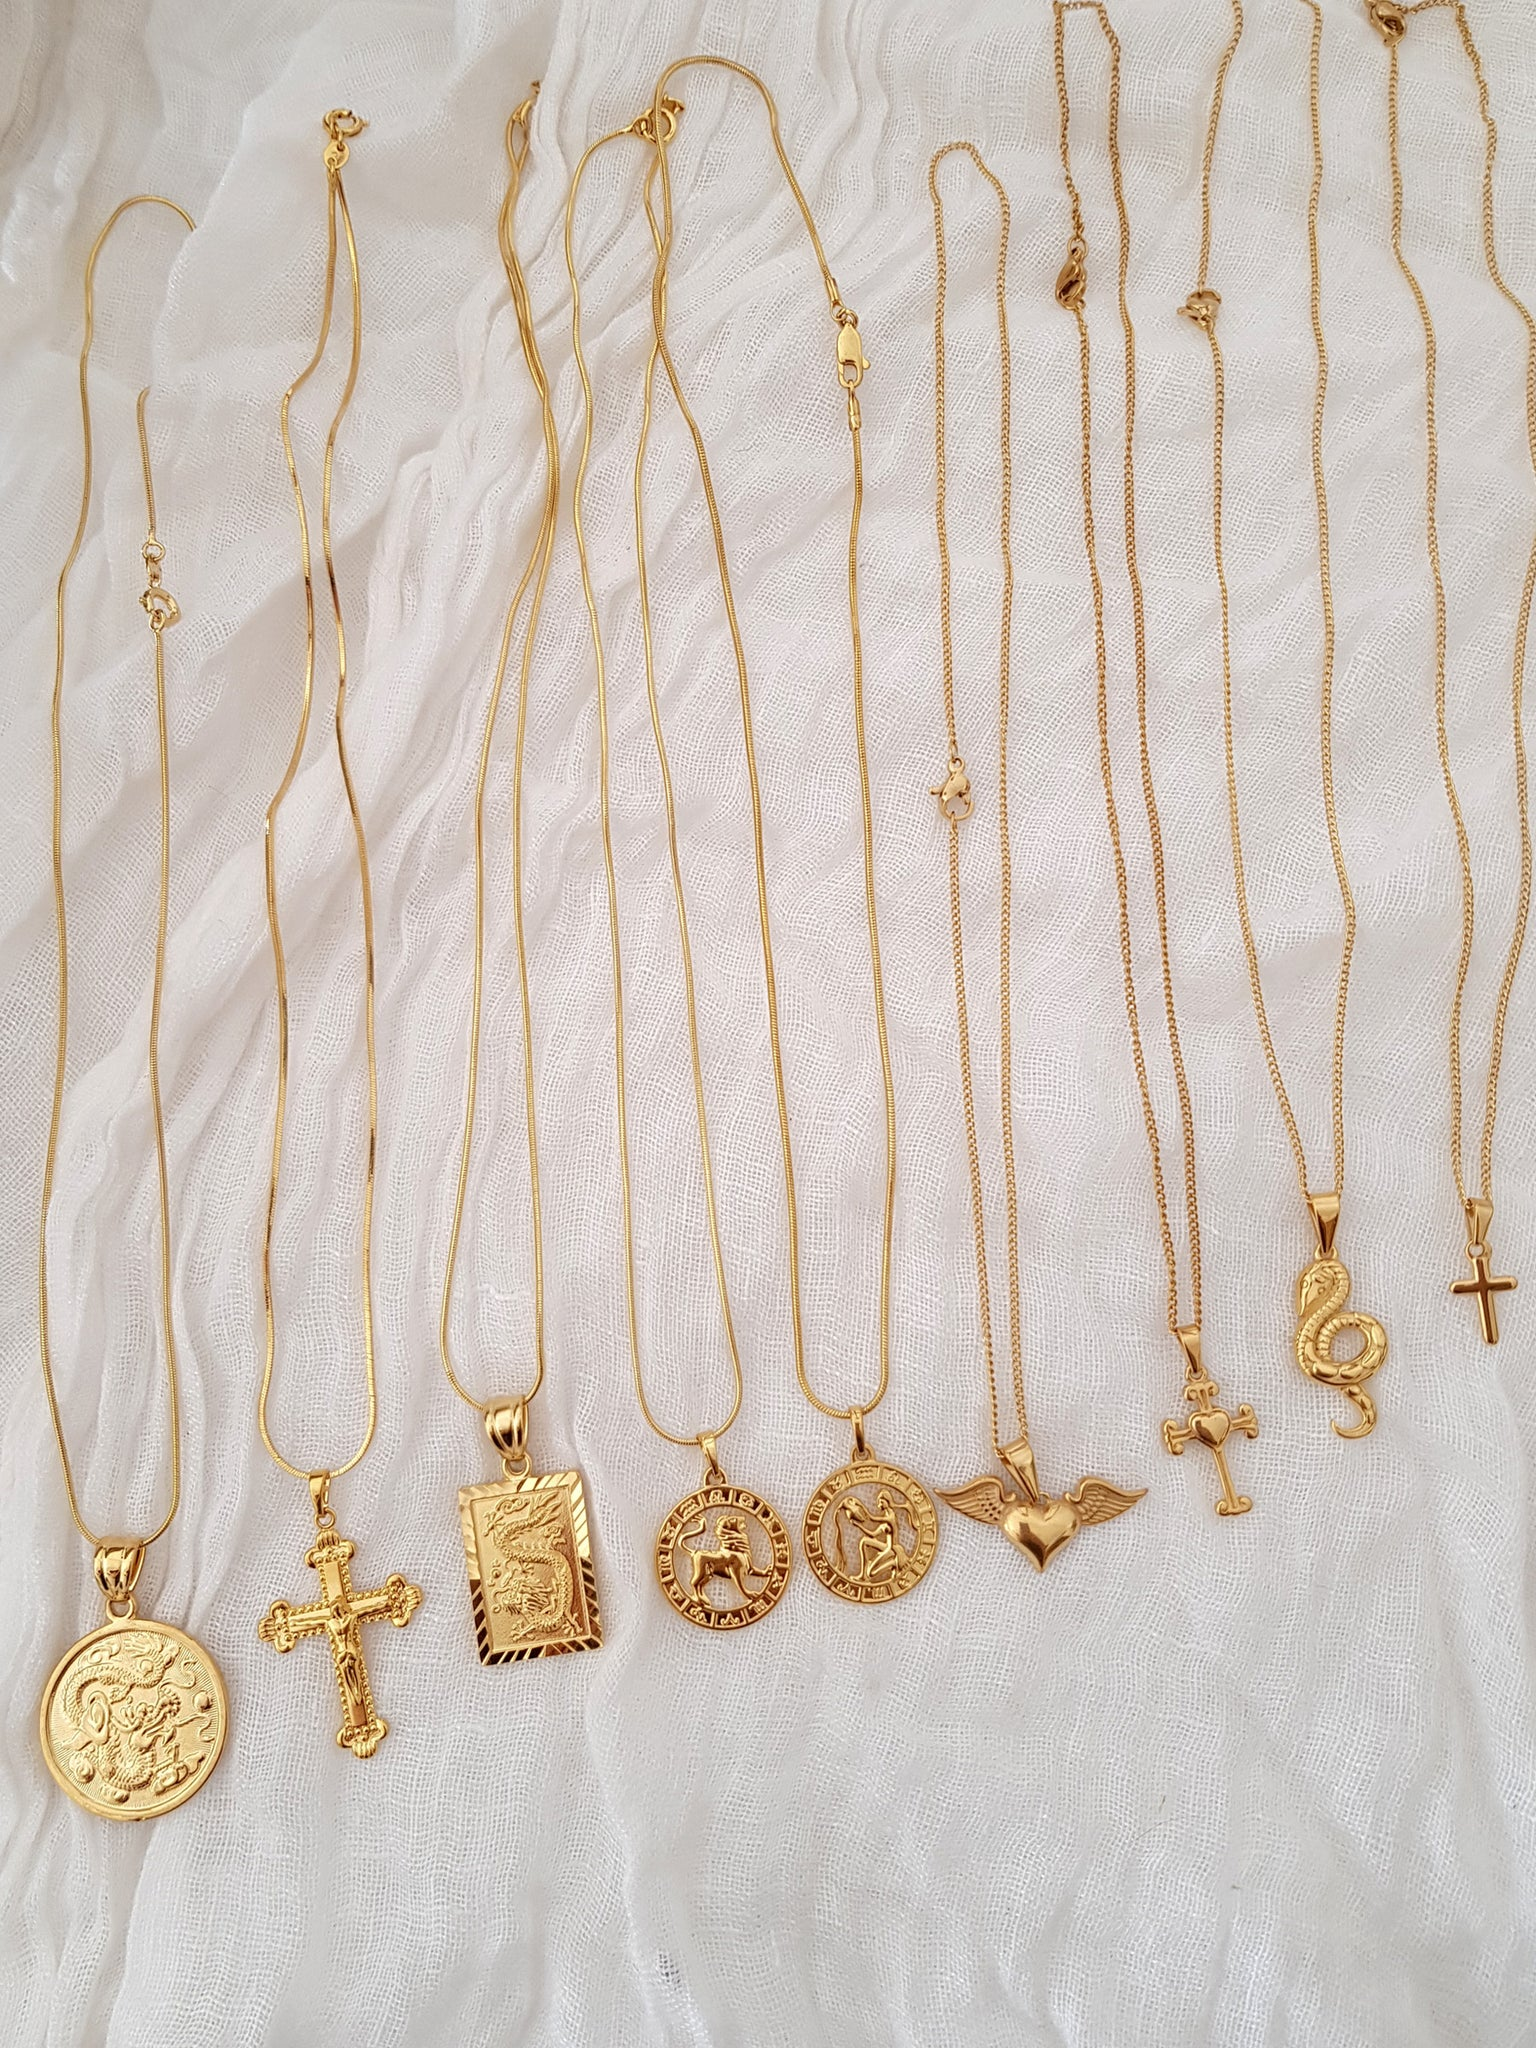 bling bling // necklaces